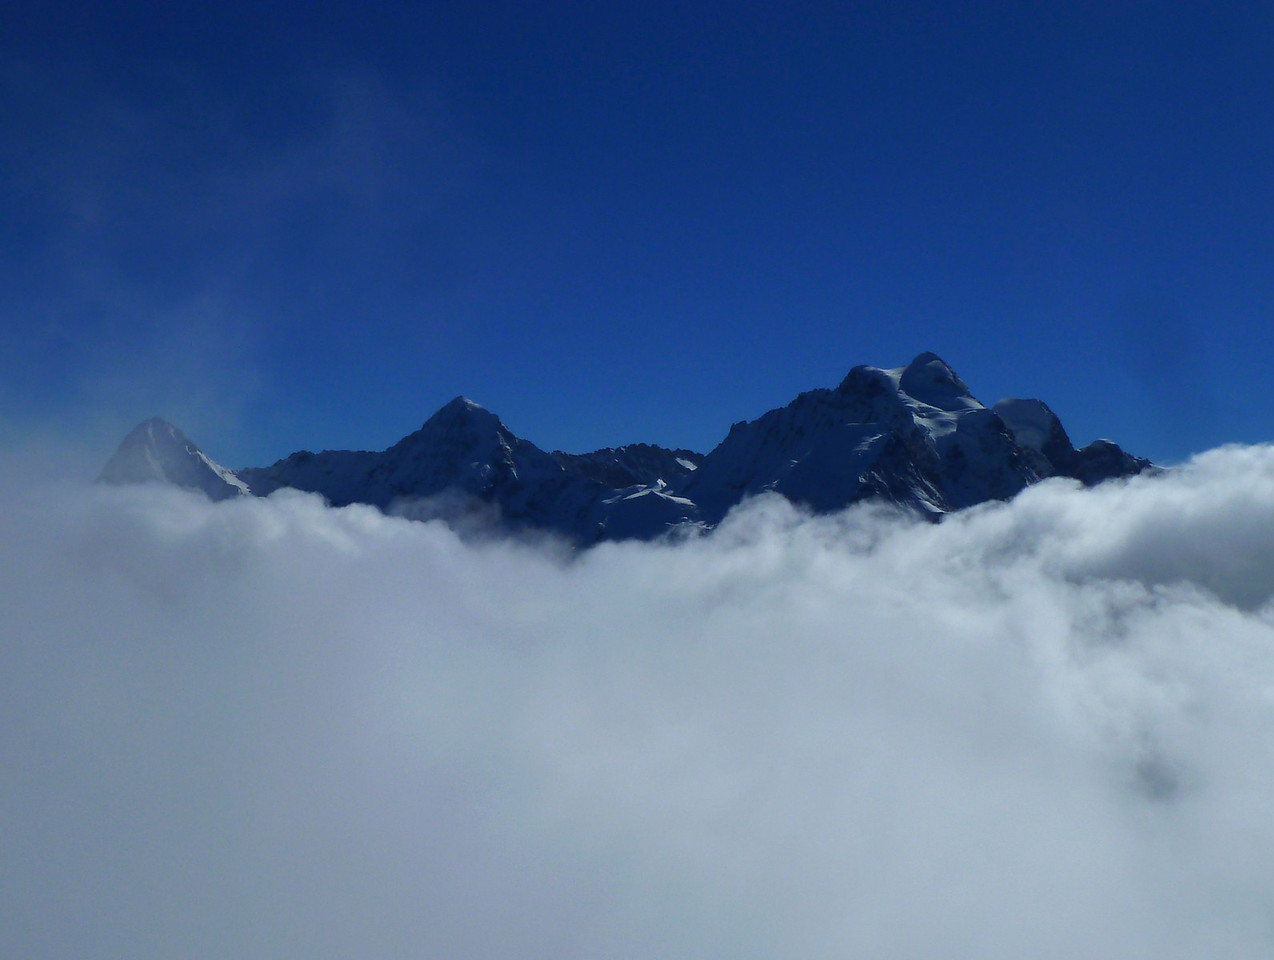 The classic trio - Eiger, Mönch and Jungfrau - as seen from the Schilthorn above the clouds.